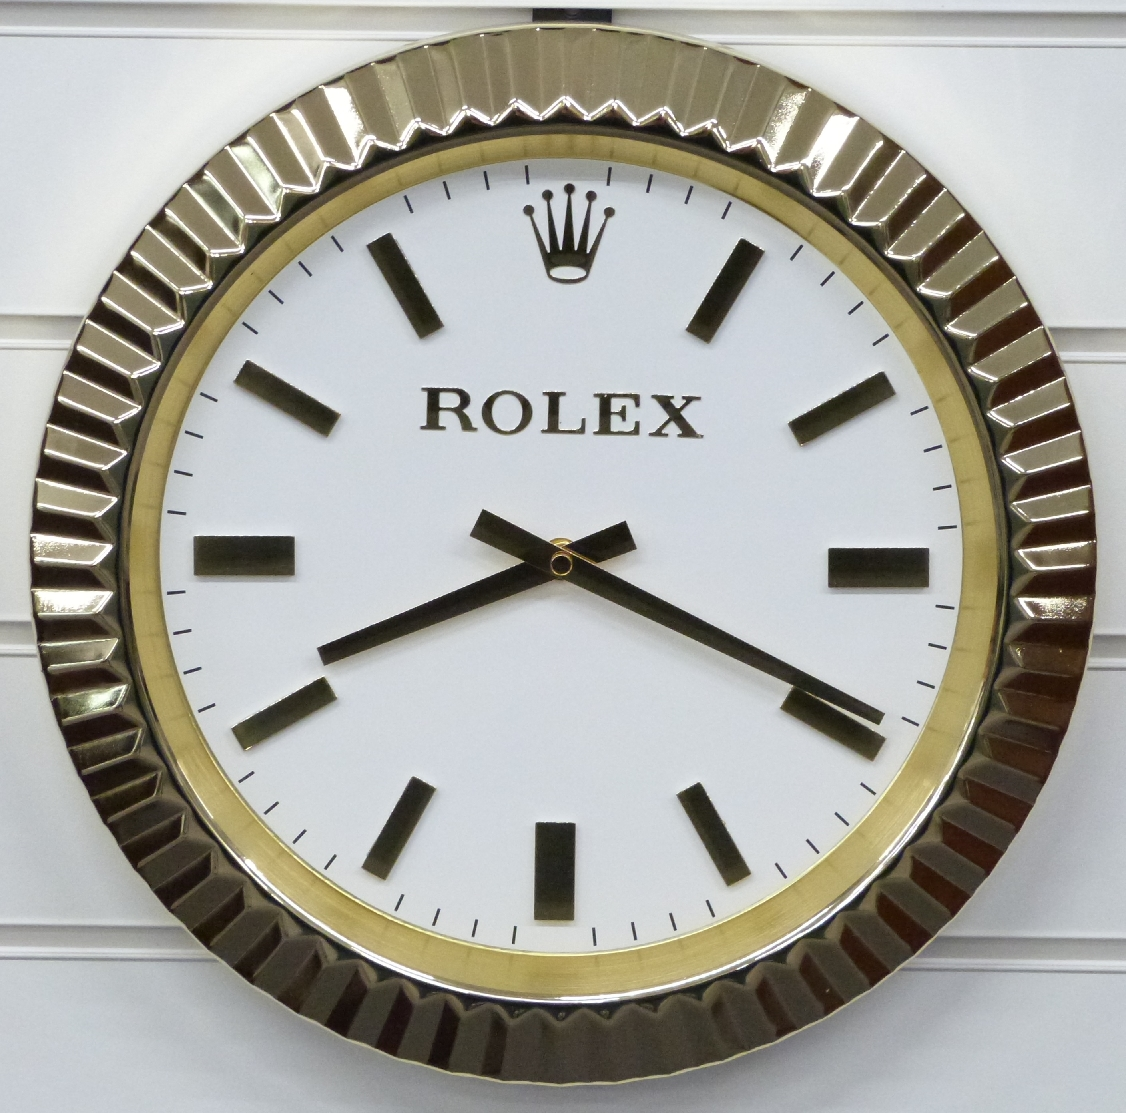 Lot 2072 Rolex Dealers Display Advertising Wall Clock With Gold Hands And Baton Markers